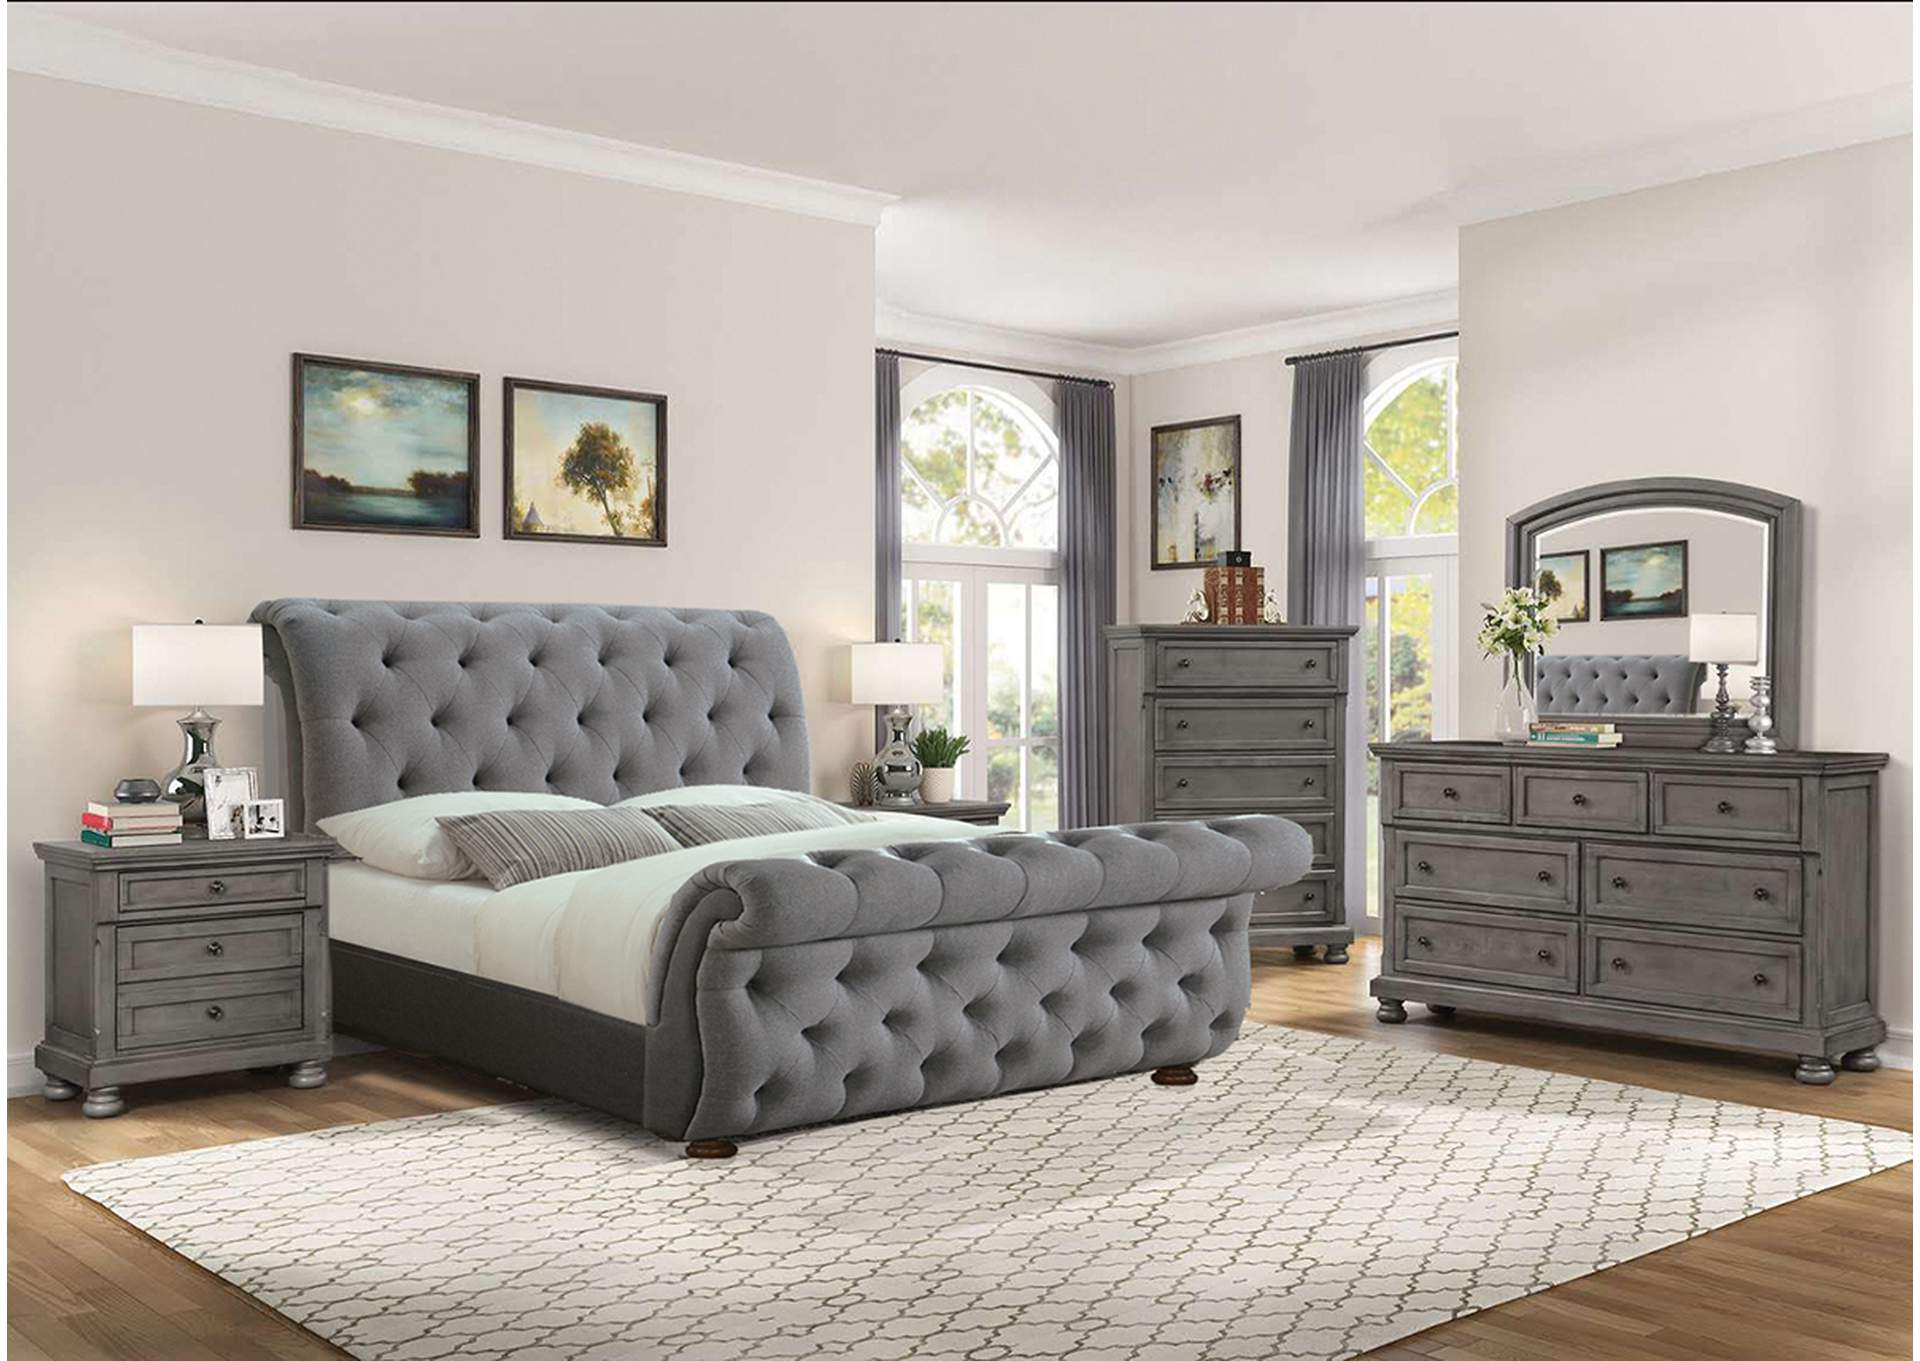 B110 Coral Reef Queen Bed,Nationwide